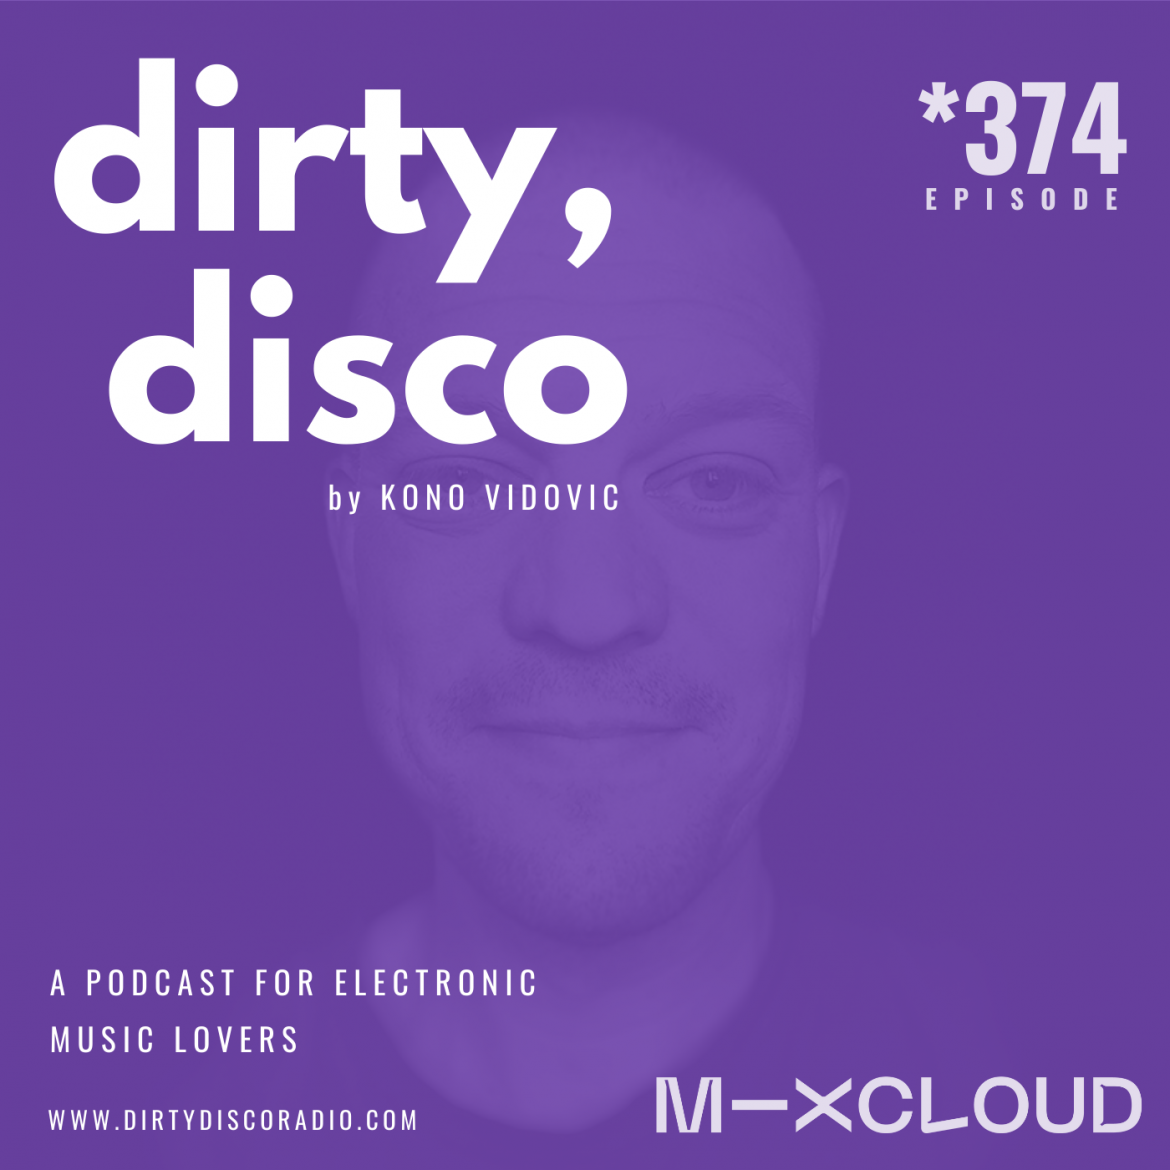 New electronic music mix selection | Dirty Disco 374